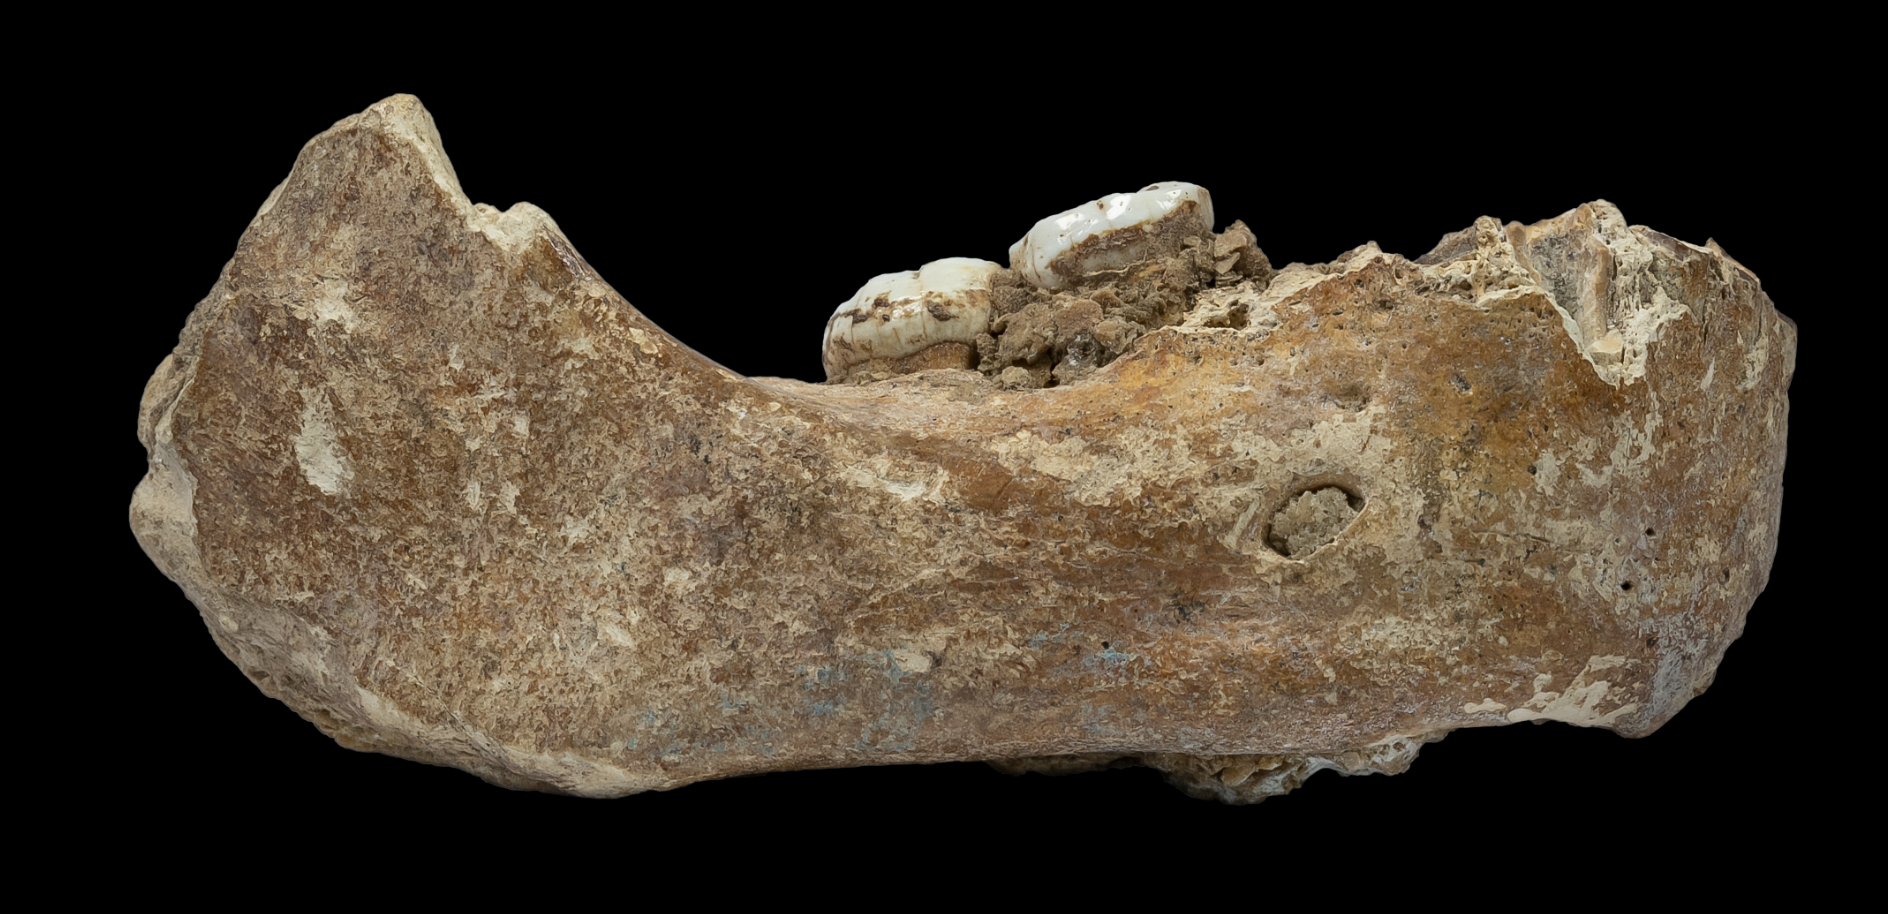 Featured image: The discovery of a Denisovan jaw bone and what it can tell us